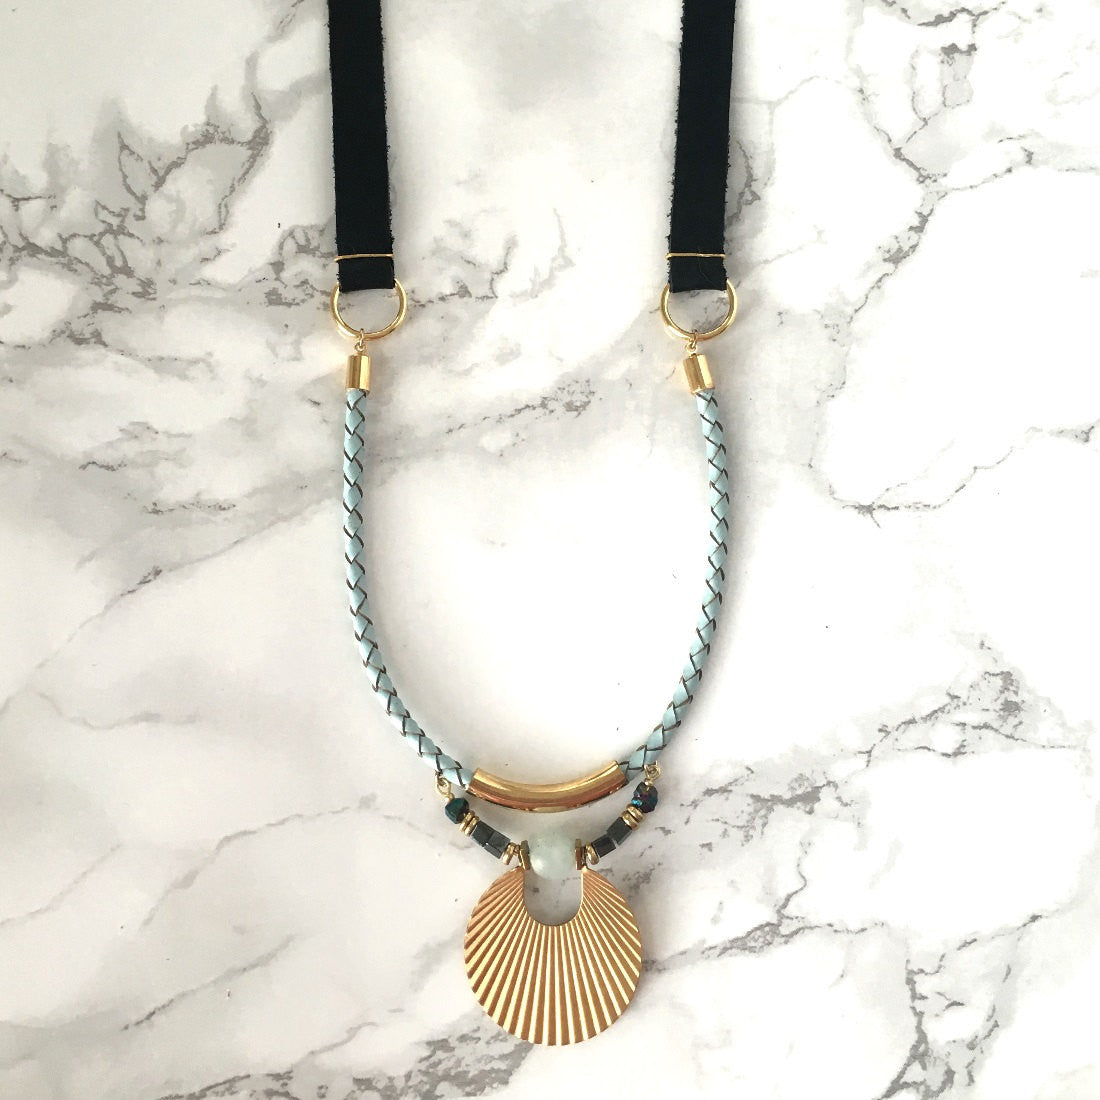 Black & Mint Art Deco Long Leather Necklace